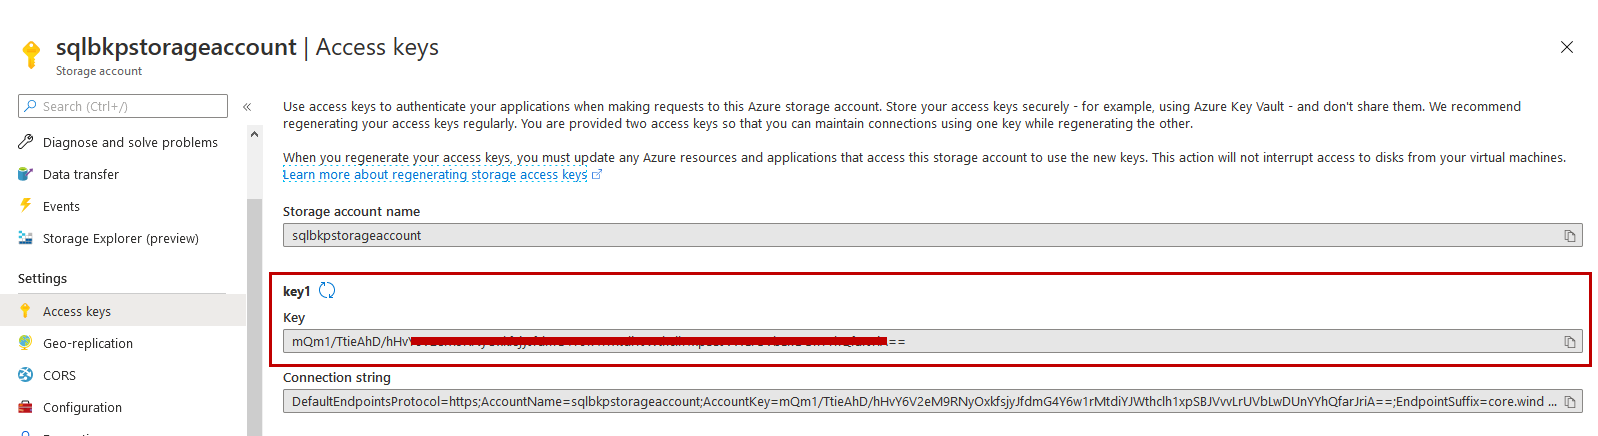 Access keys of the Azure storage account